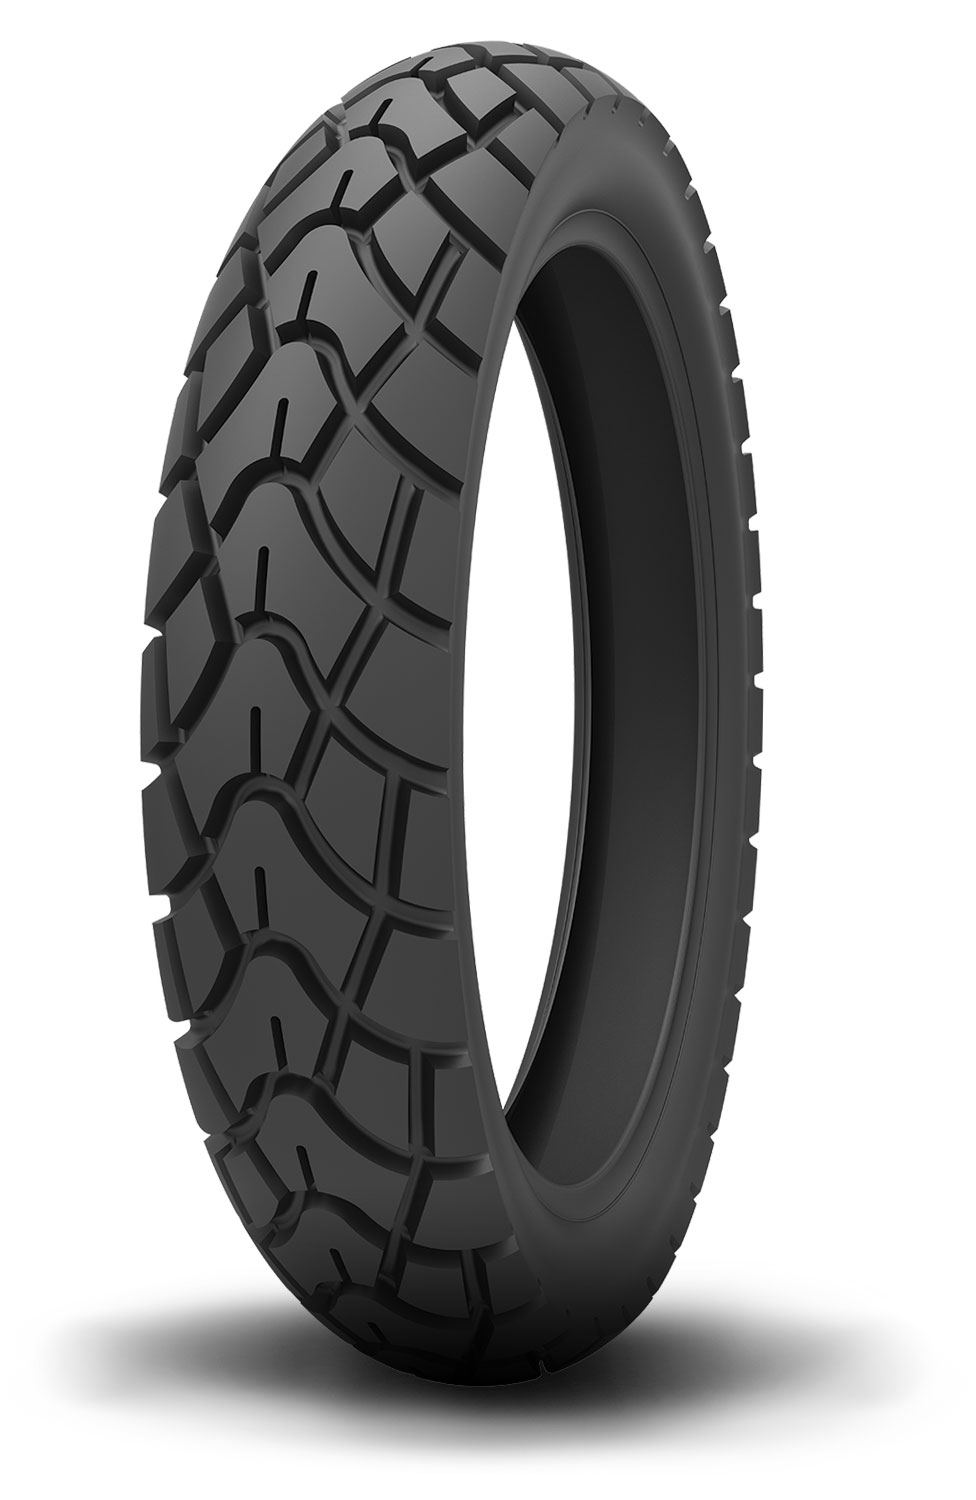 Motorcycle Tire Sizes >> Kenda Dual Sport Tires & More | Powersports | Kenda Tires | K761 Dual Sport Tires | Find a Tire ...